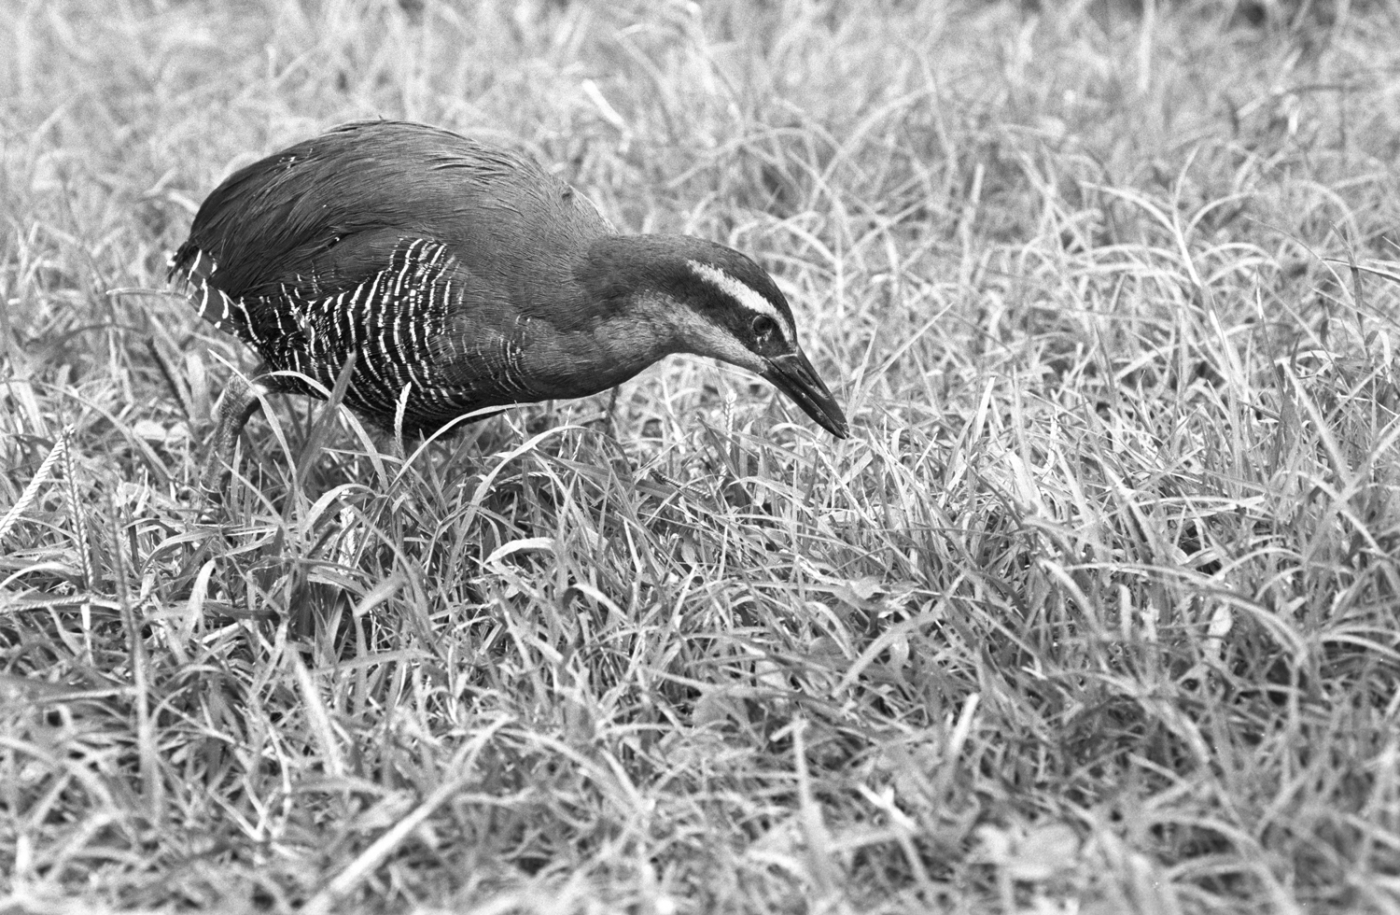 A black-and-white image of a small bird, called a Guam rail, walking through the grass at the Smithsonian Conservation Biology Institute in 1994